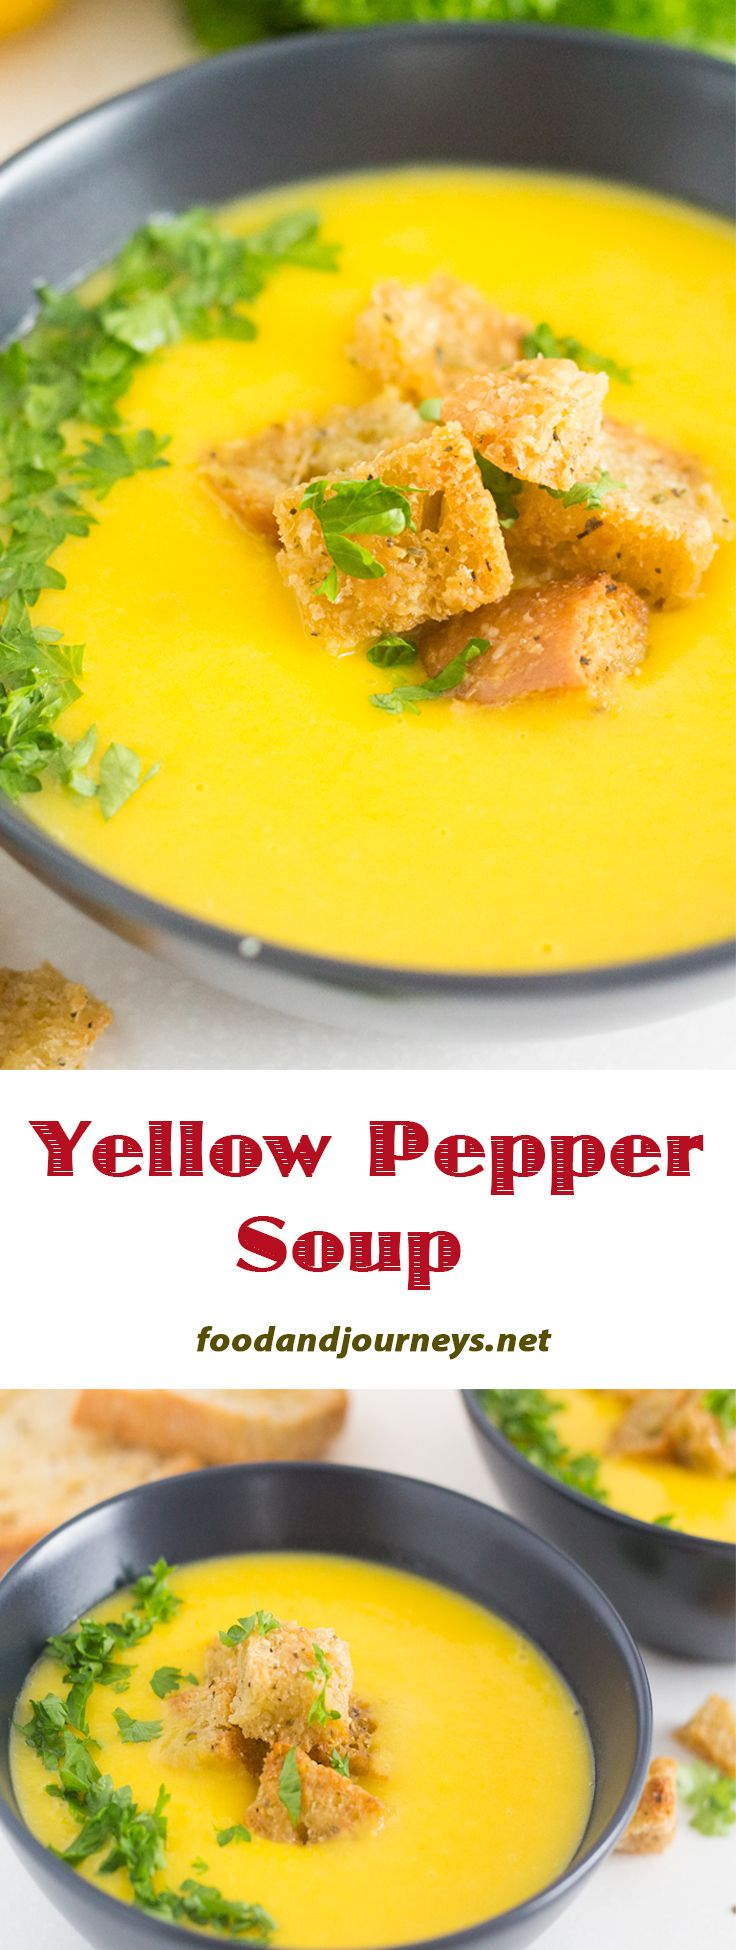 Popularized in Florence, it's mainly yellow peppers mixed with potatoes to add creaminess. Give this deliciously healthy and light soup a try!